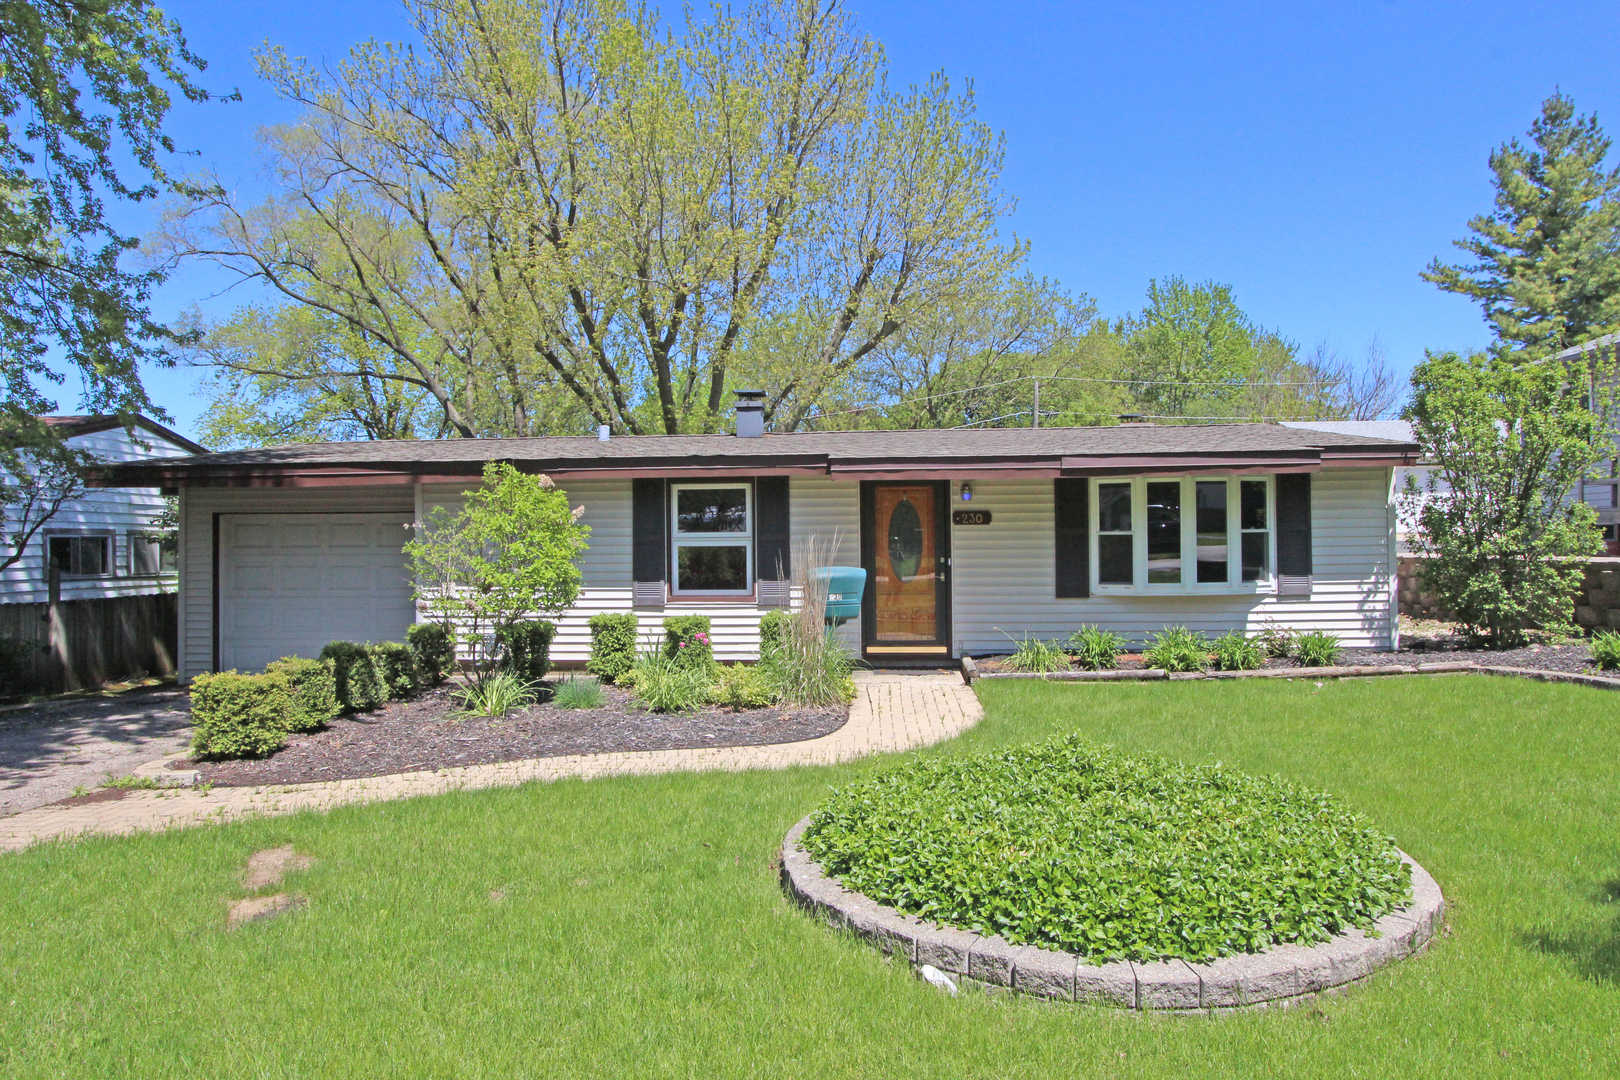 230 Prairie ,Lake Zurich, Illinois 60047